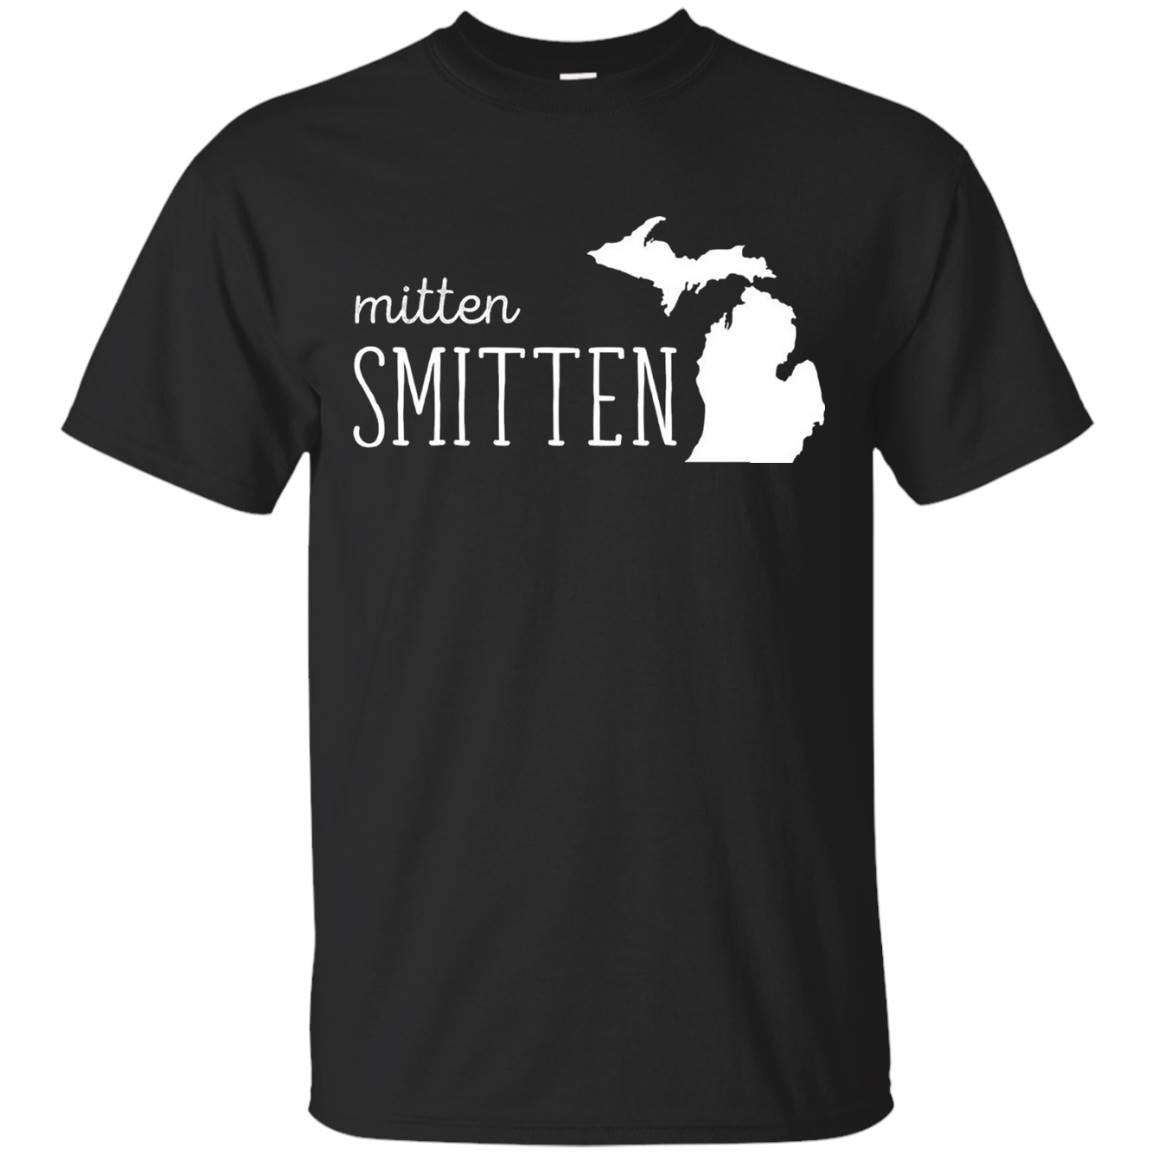 Michigan Mitten Smitten State T-shirt